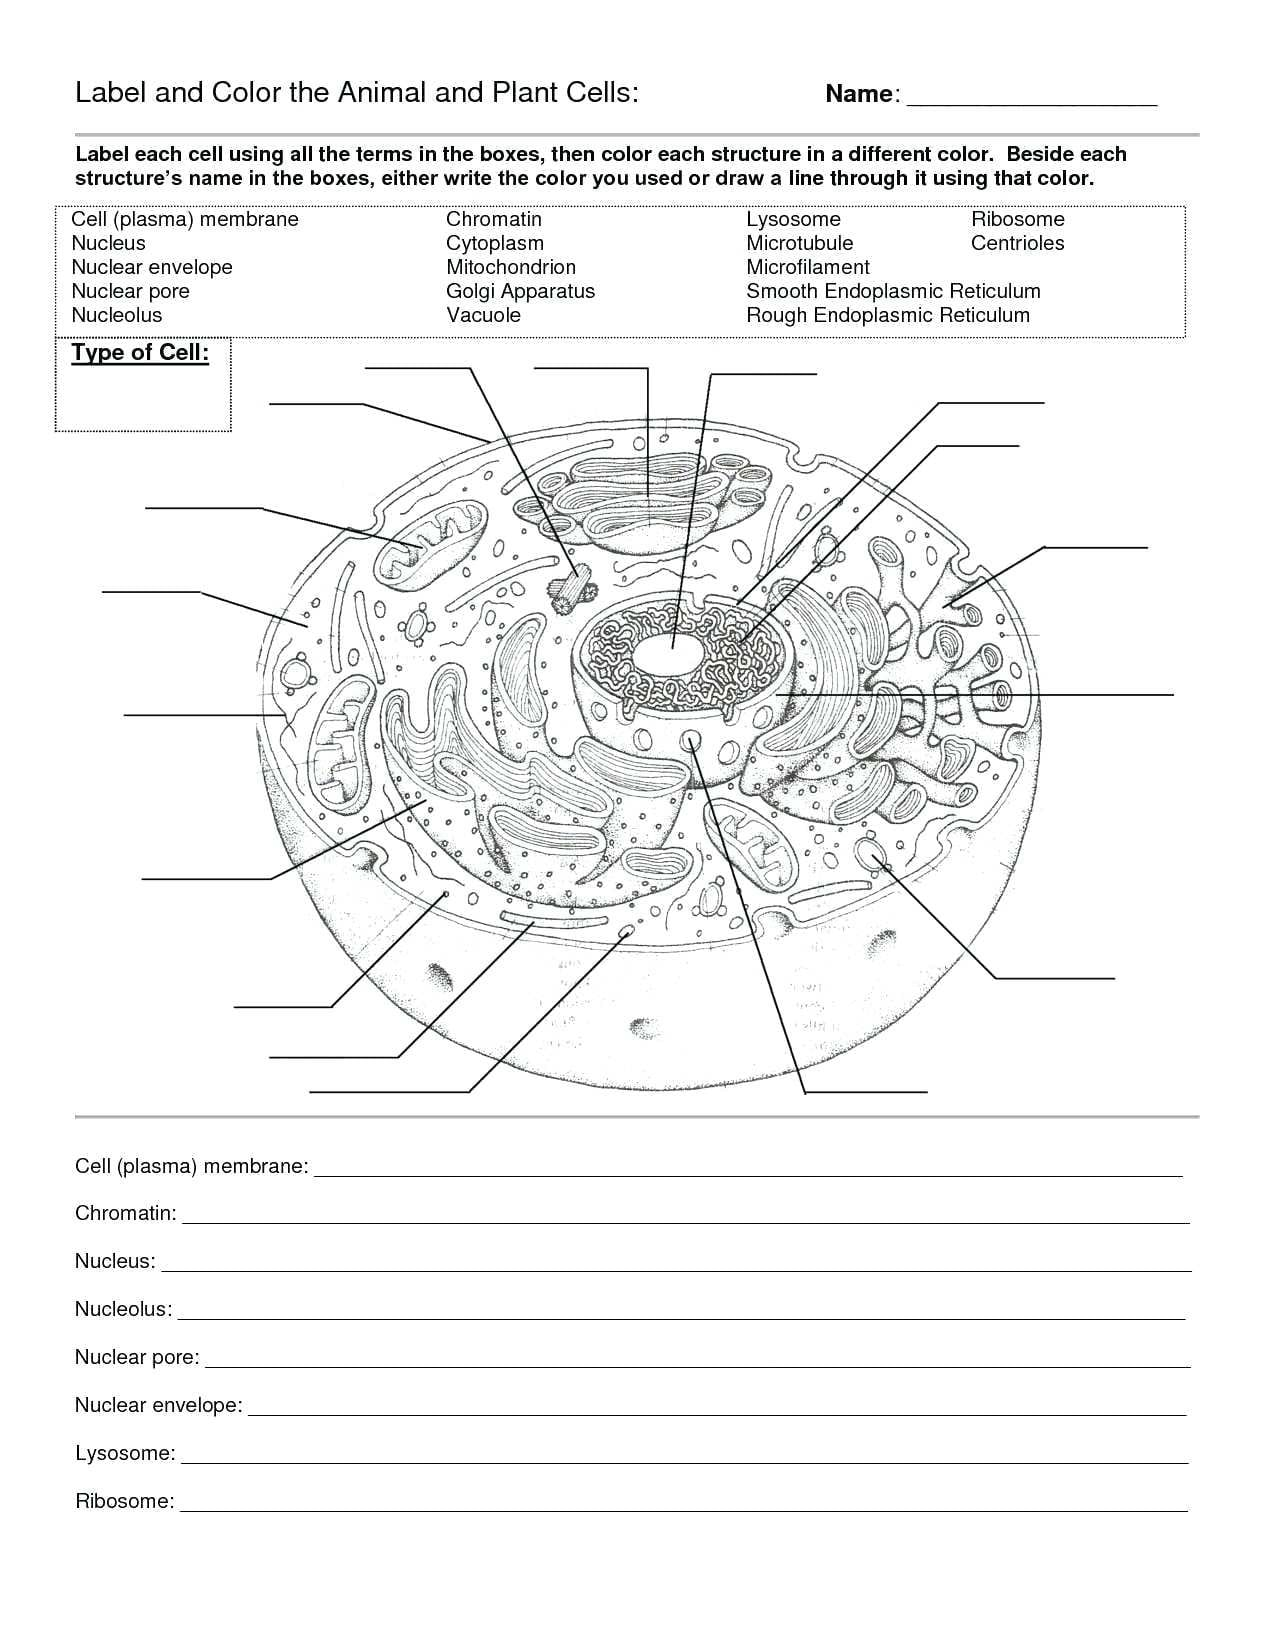 Animal Cell Diagram Coloring Worksheet Templarcolorco